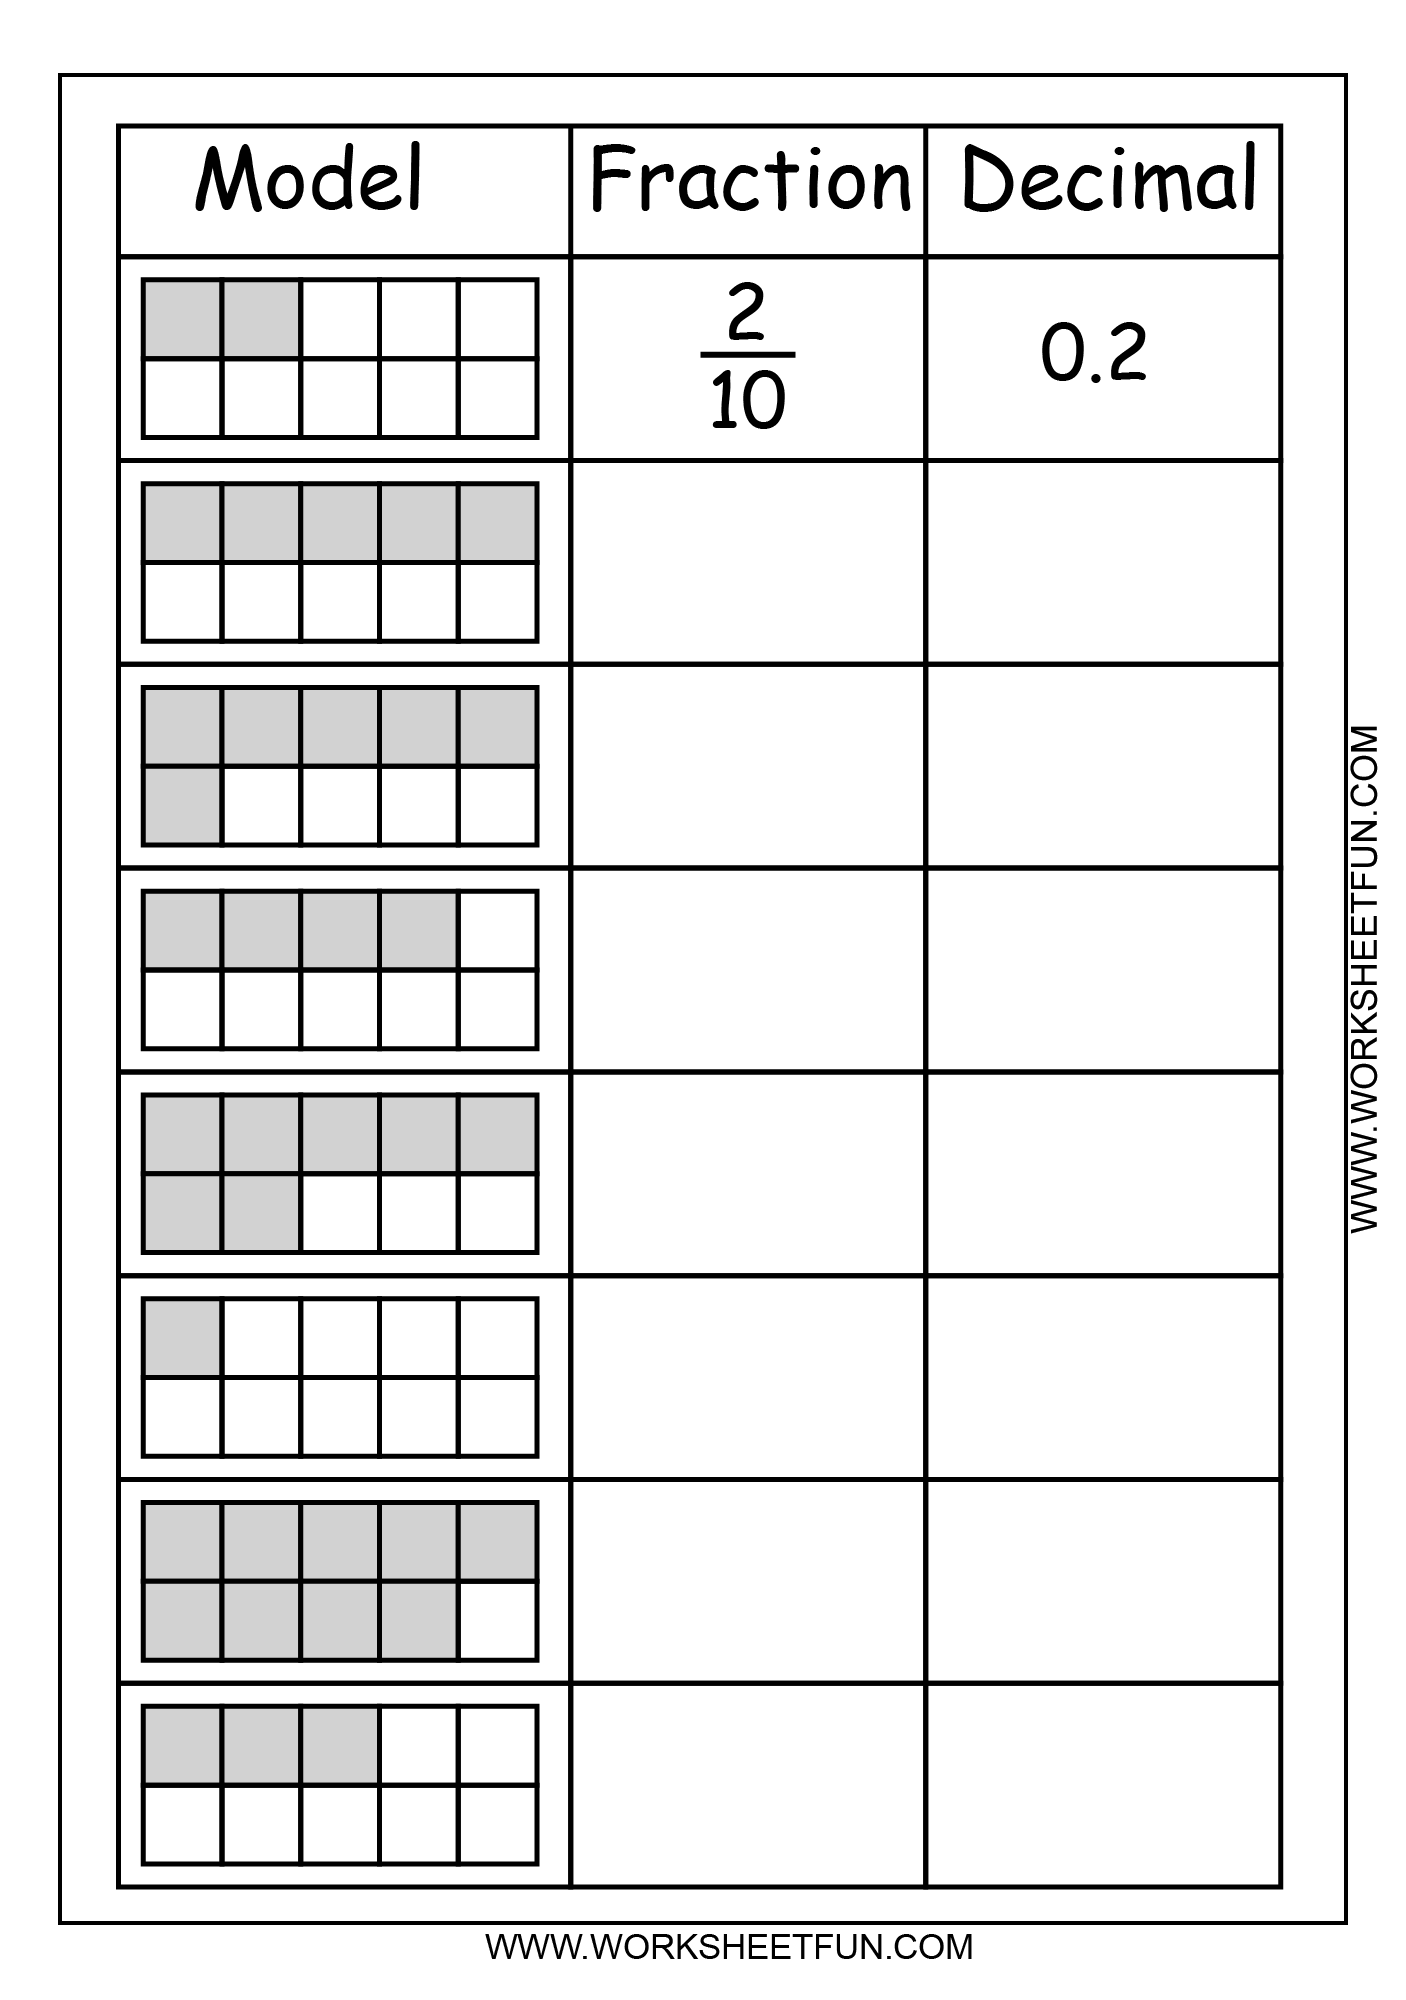 model fraction decimal printable worksheets pinterest models math and school. Black Bedroom Furniture Sets. Home Design Ideas